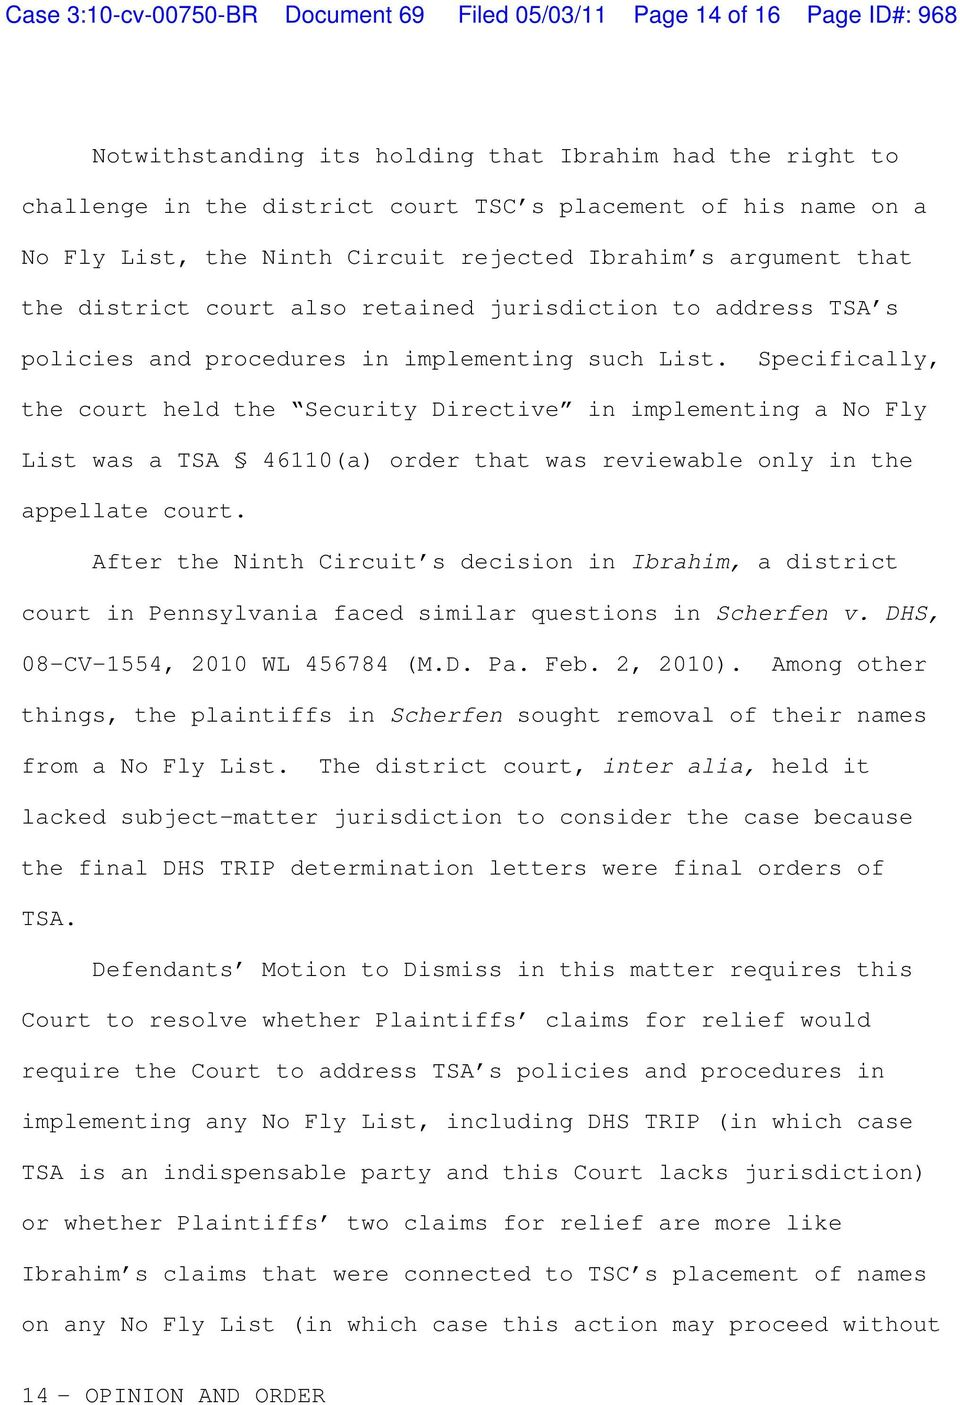 Specifically, the court held the Security Directive in implementing a No Fly List was a TSA 46110(a) order that was reviewable only in the appellate court.